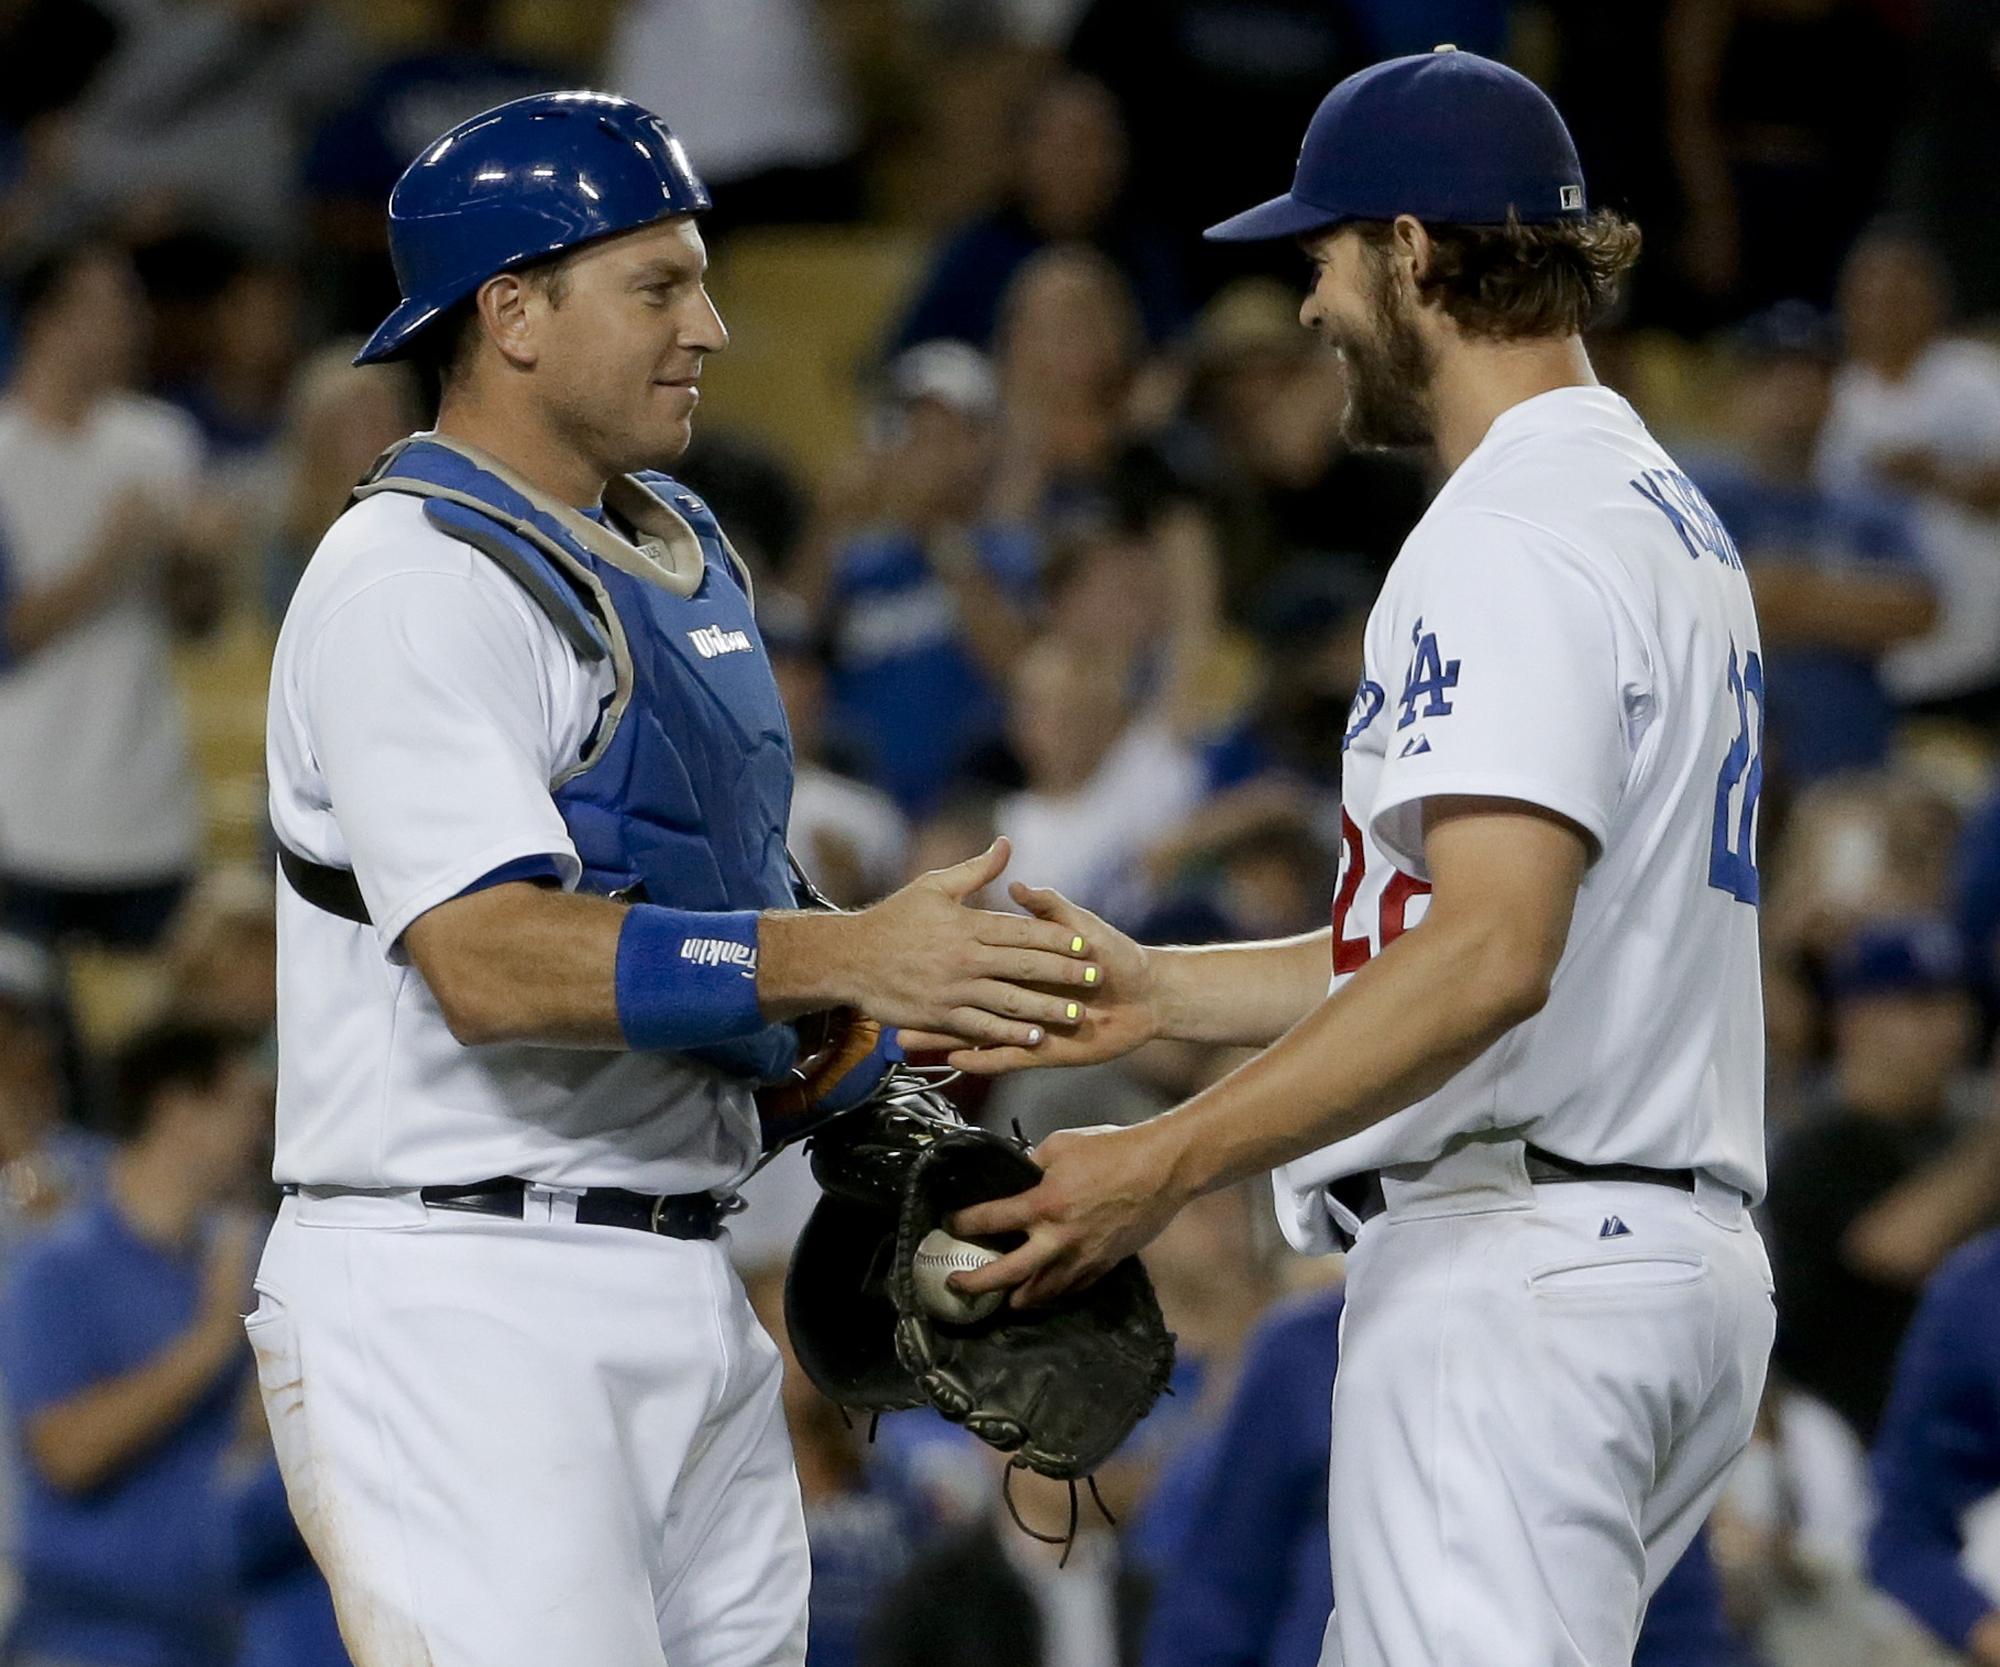 Los Angeles Dodgers starting pitcher Clayton Kershaw, right, celebrates with catcher A.J. Ellis after pitching a shutout against the Philadelphia Phillies during a baseball game in Los Angeles, Wednesday, July 8, 2015. The Dodgers won 5-0. (AP Photo/Chris Carlson)